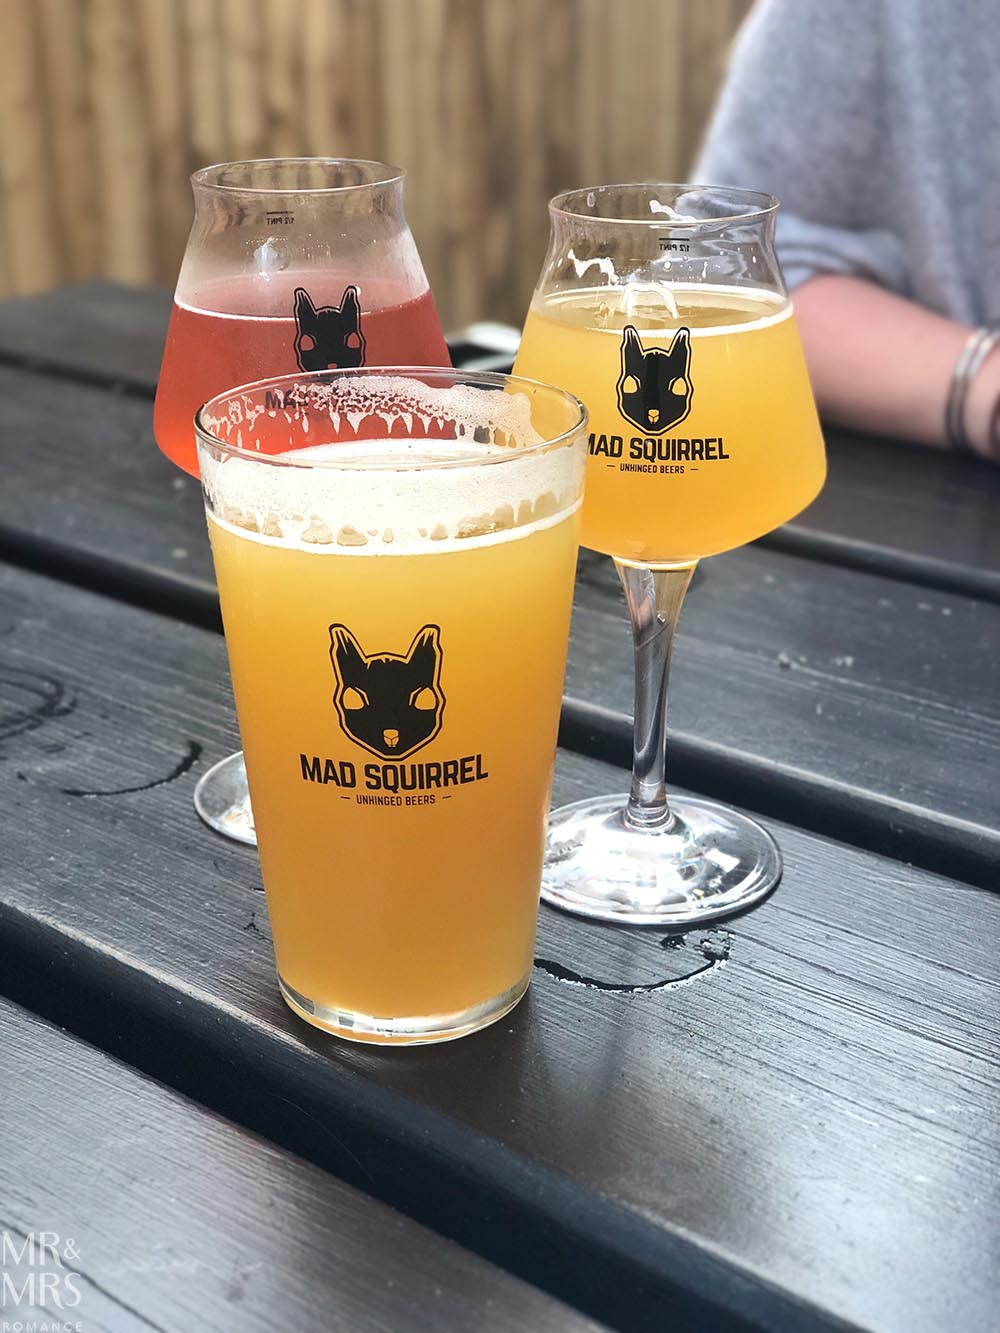 Mad Squirrel Brewery beers, St Albans